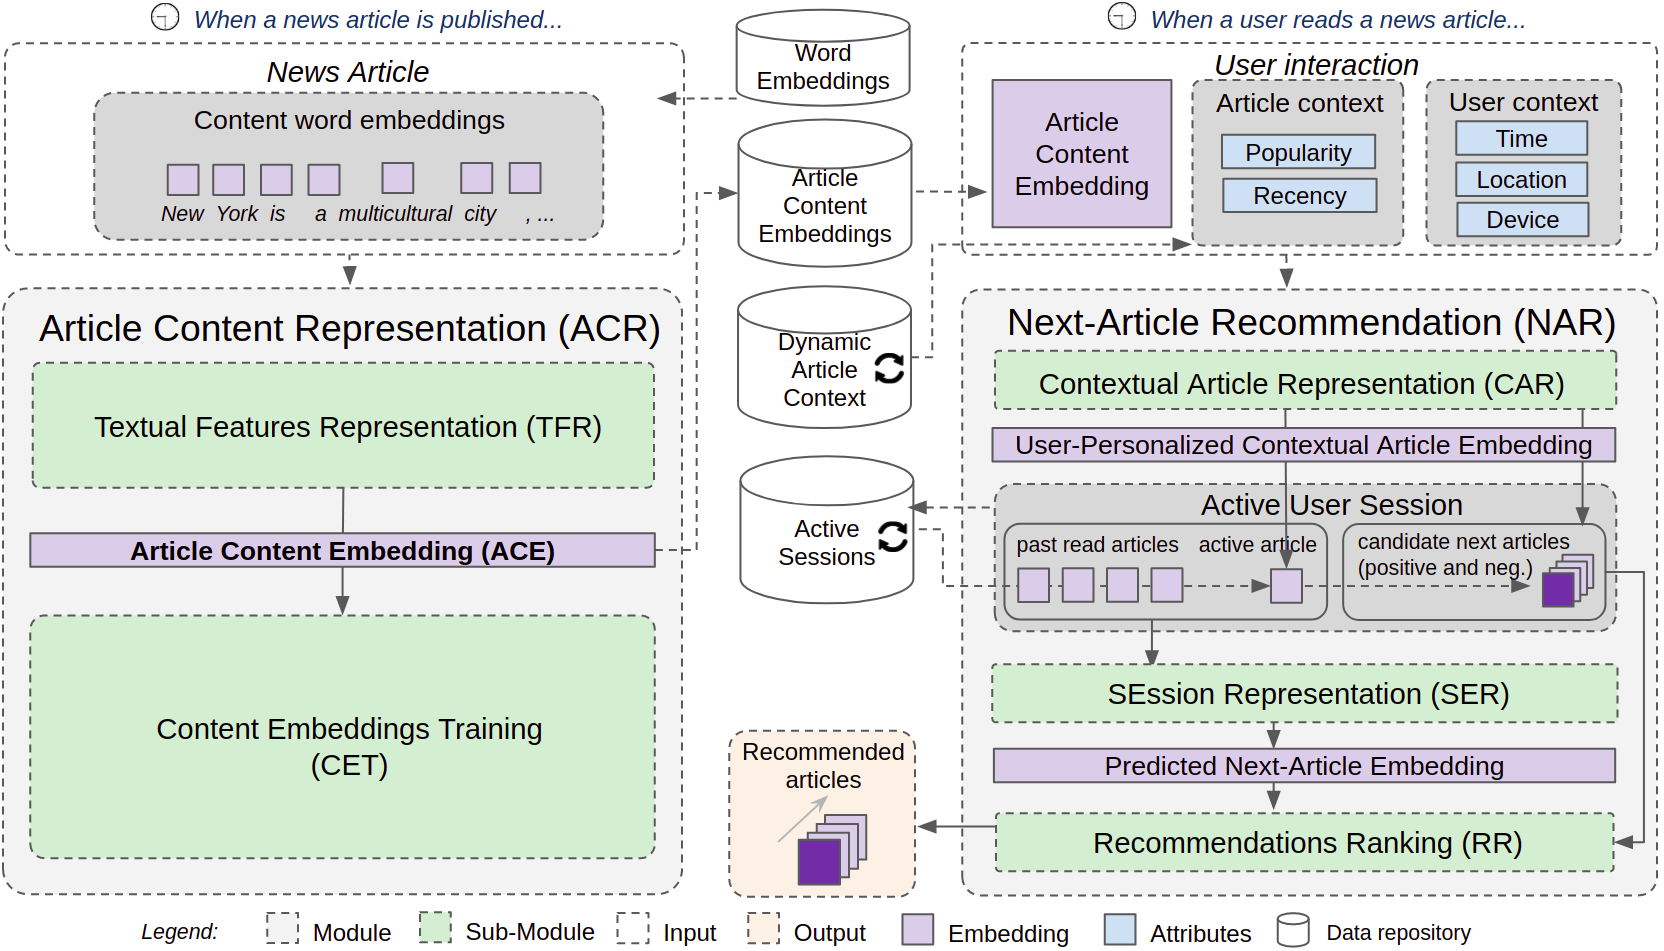 Papers With Code : Session-Based Recommendations